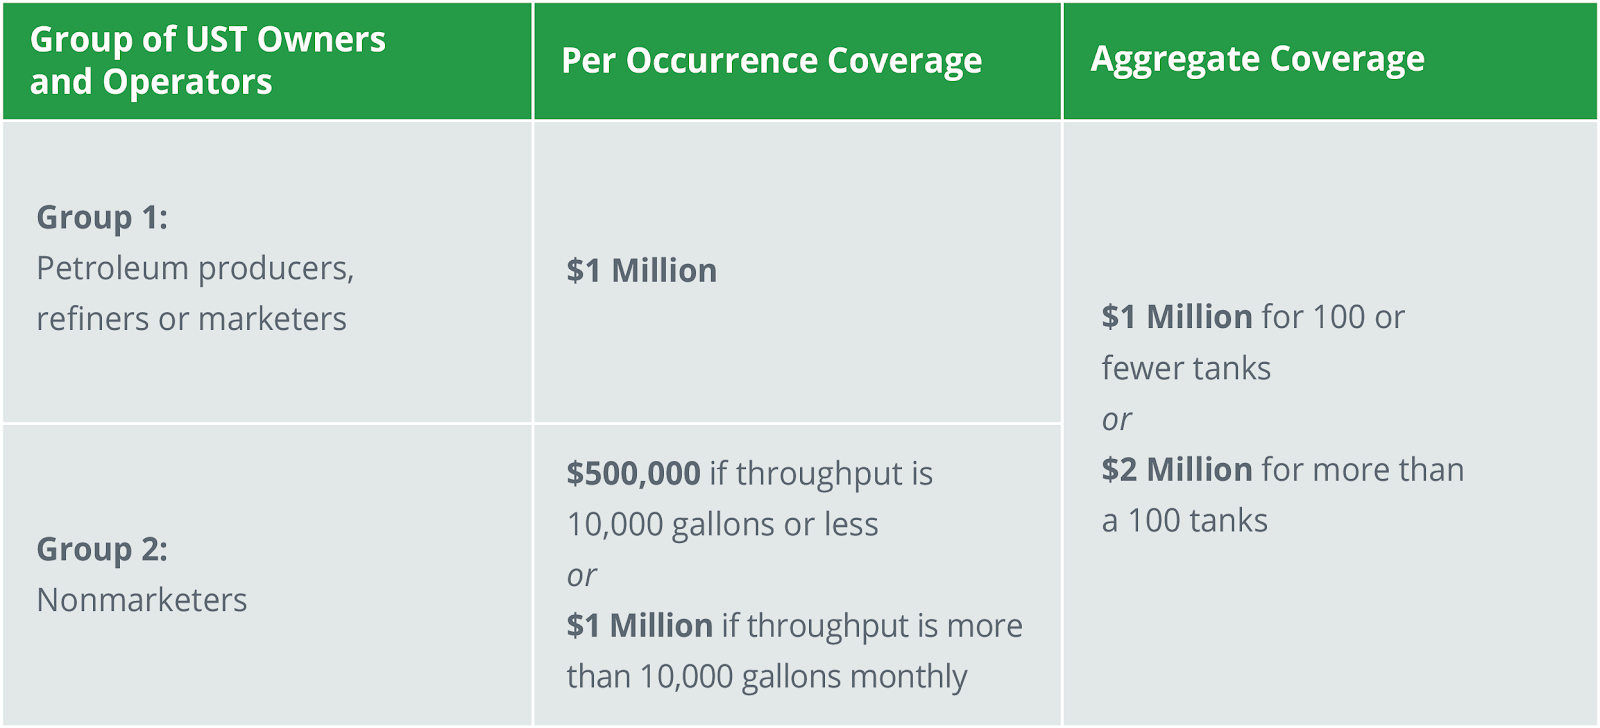 Table showing cost of coverage for various groups of UST Owners and Operators